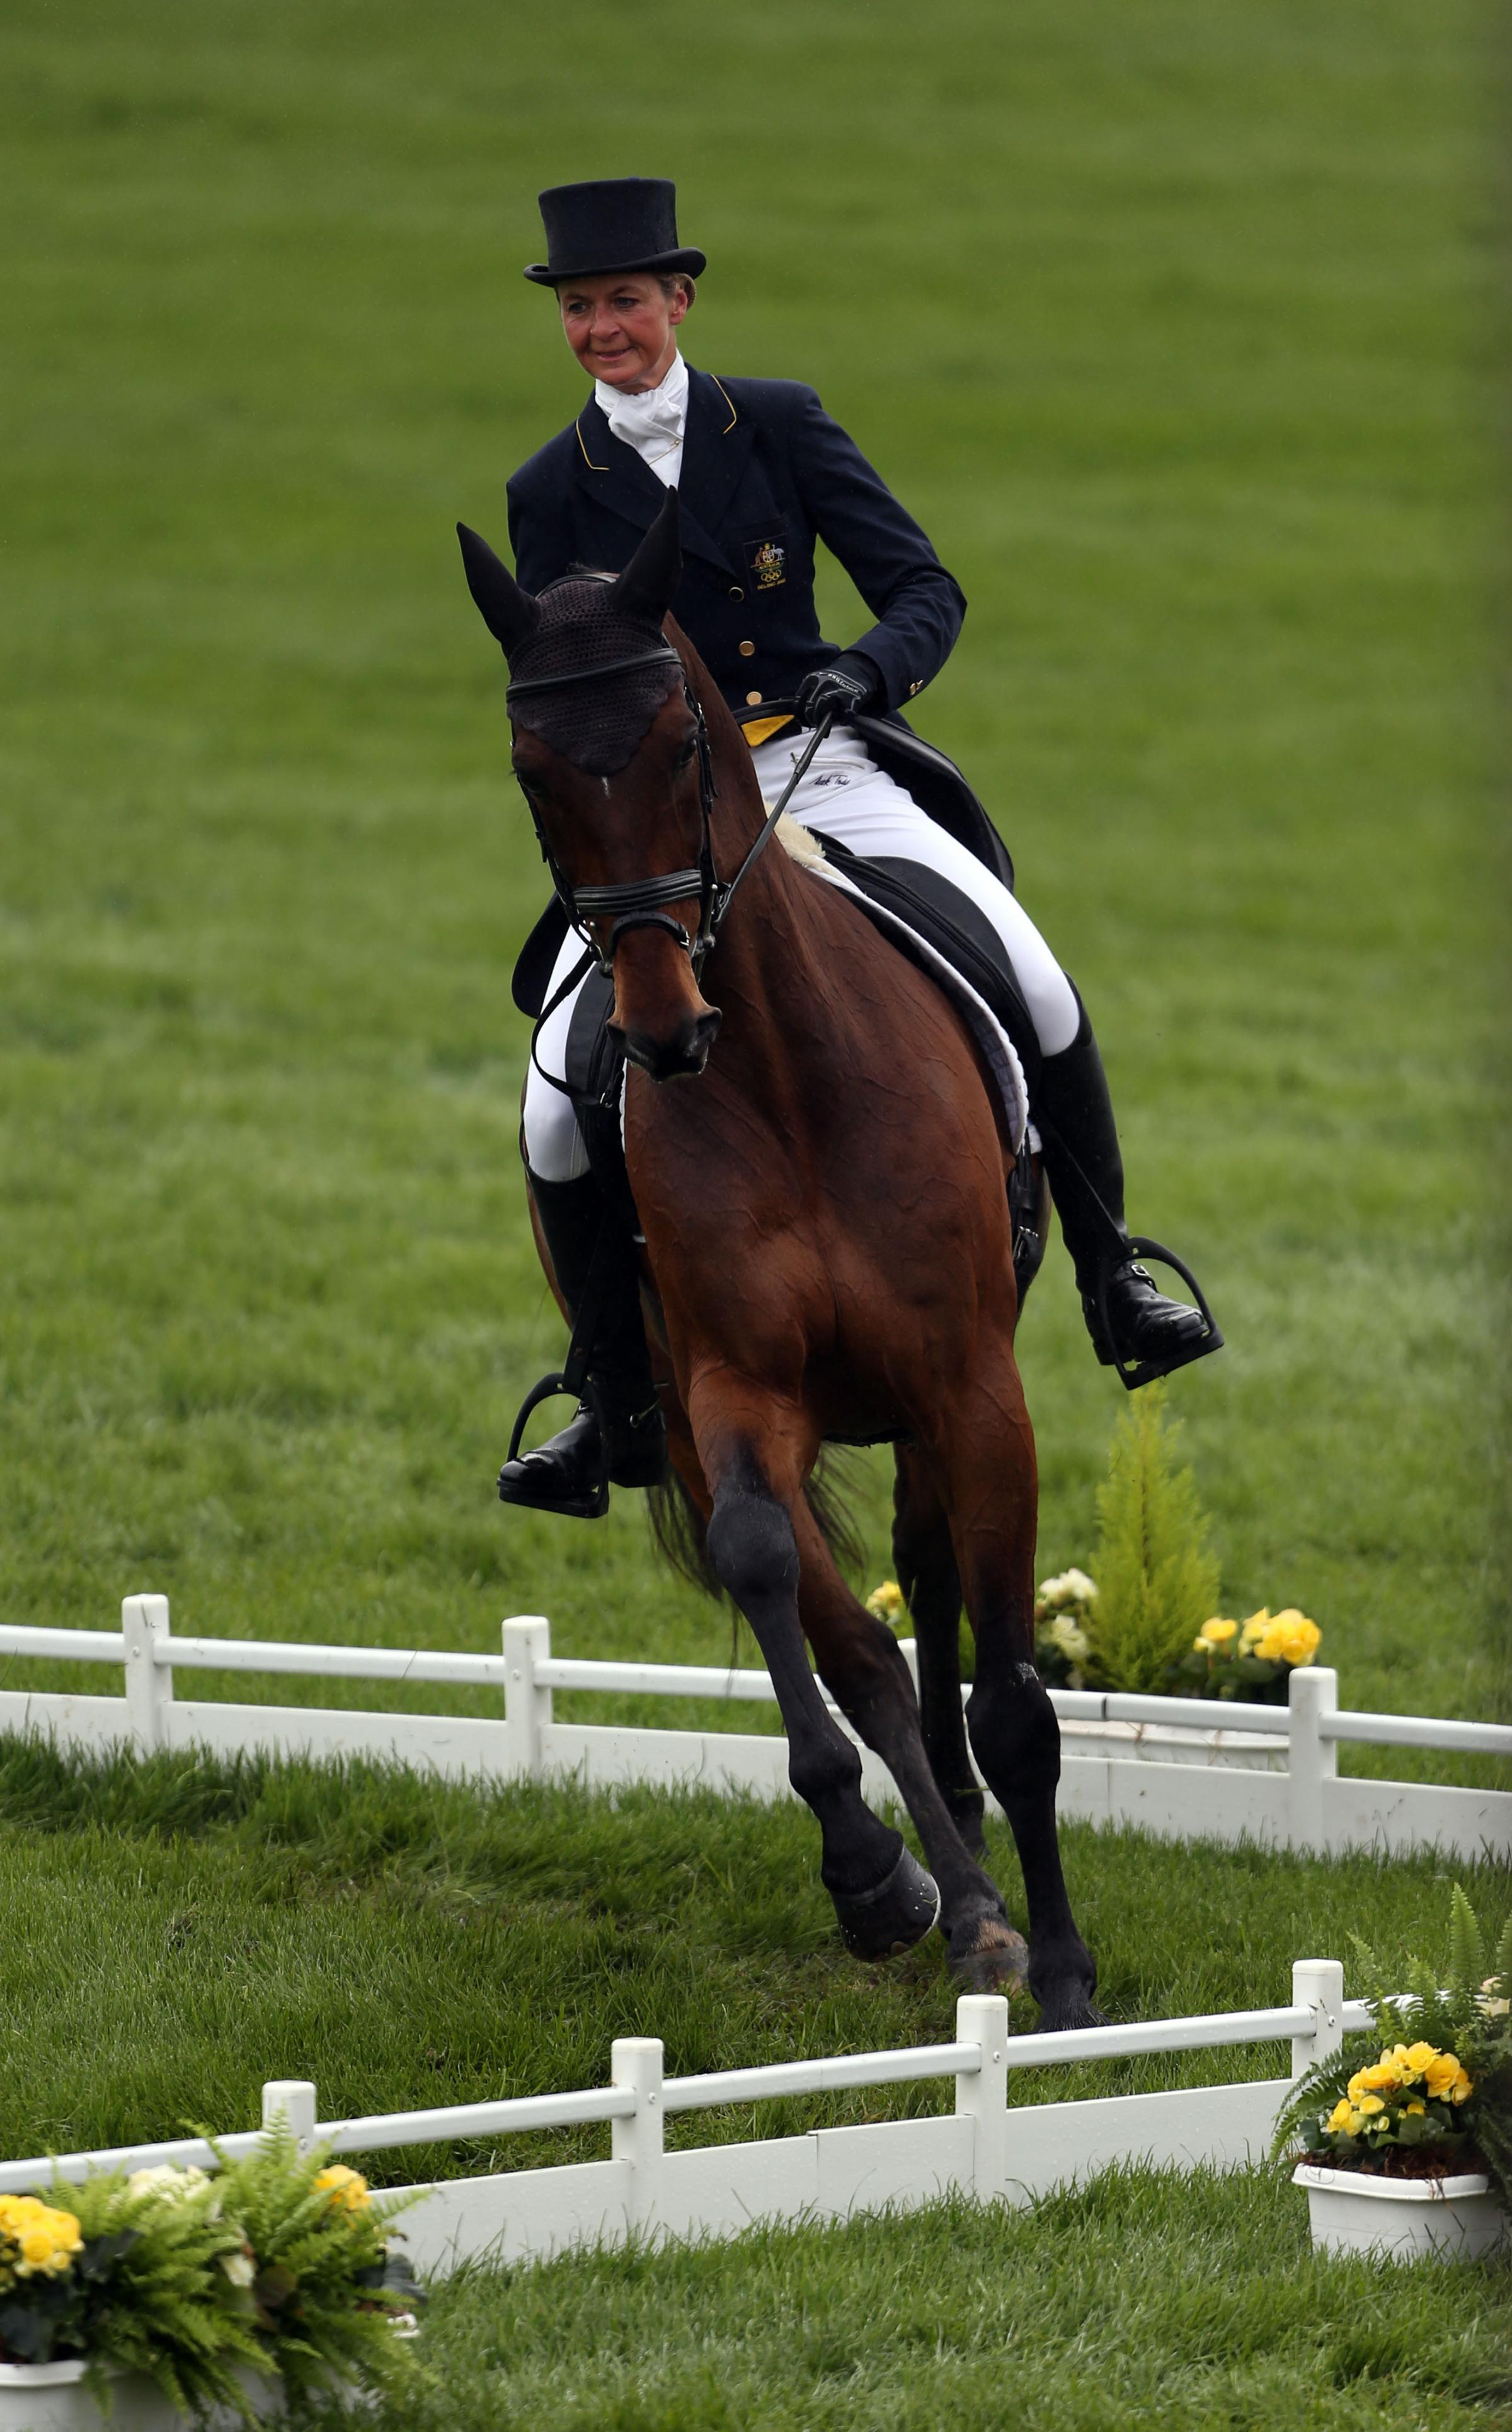 BADMINTON HORSE TRIALS: Whittington ahead after day one